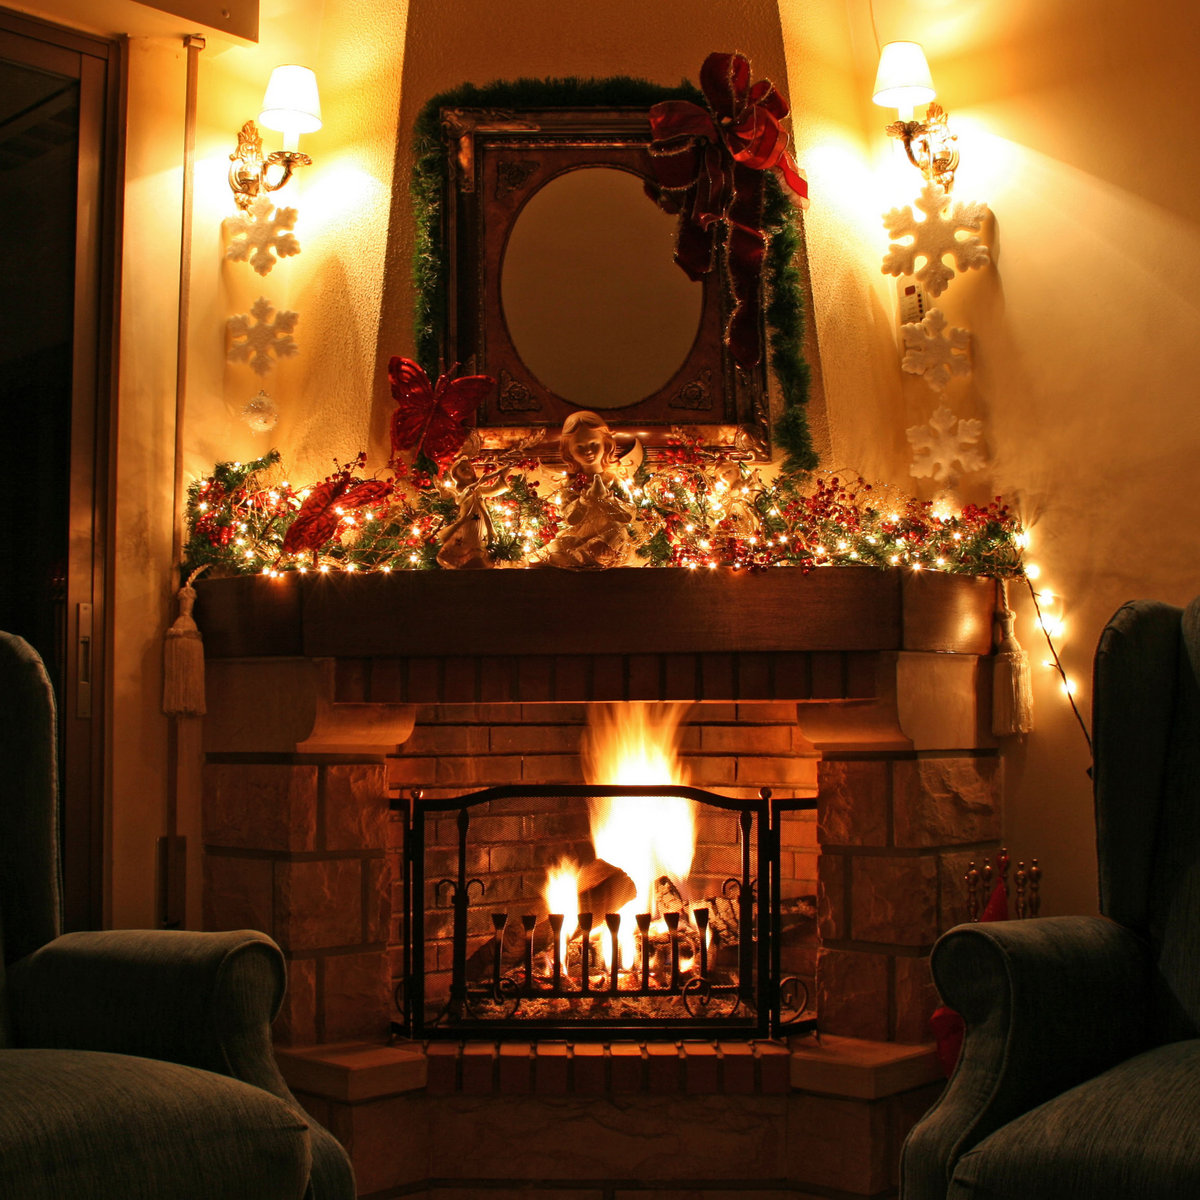 Relaxing Fire Sound 1 hour - Christmas Fireplace with crackling ...